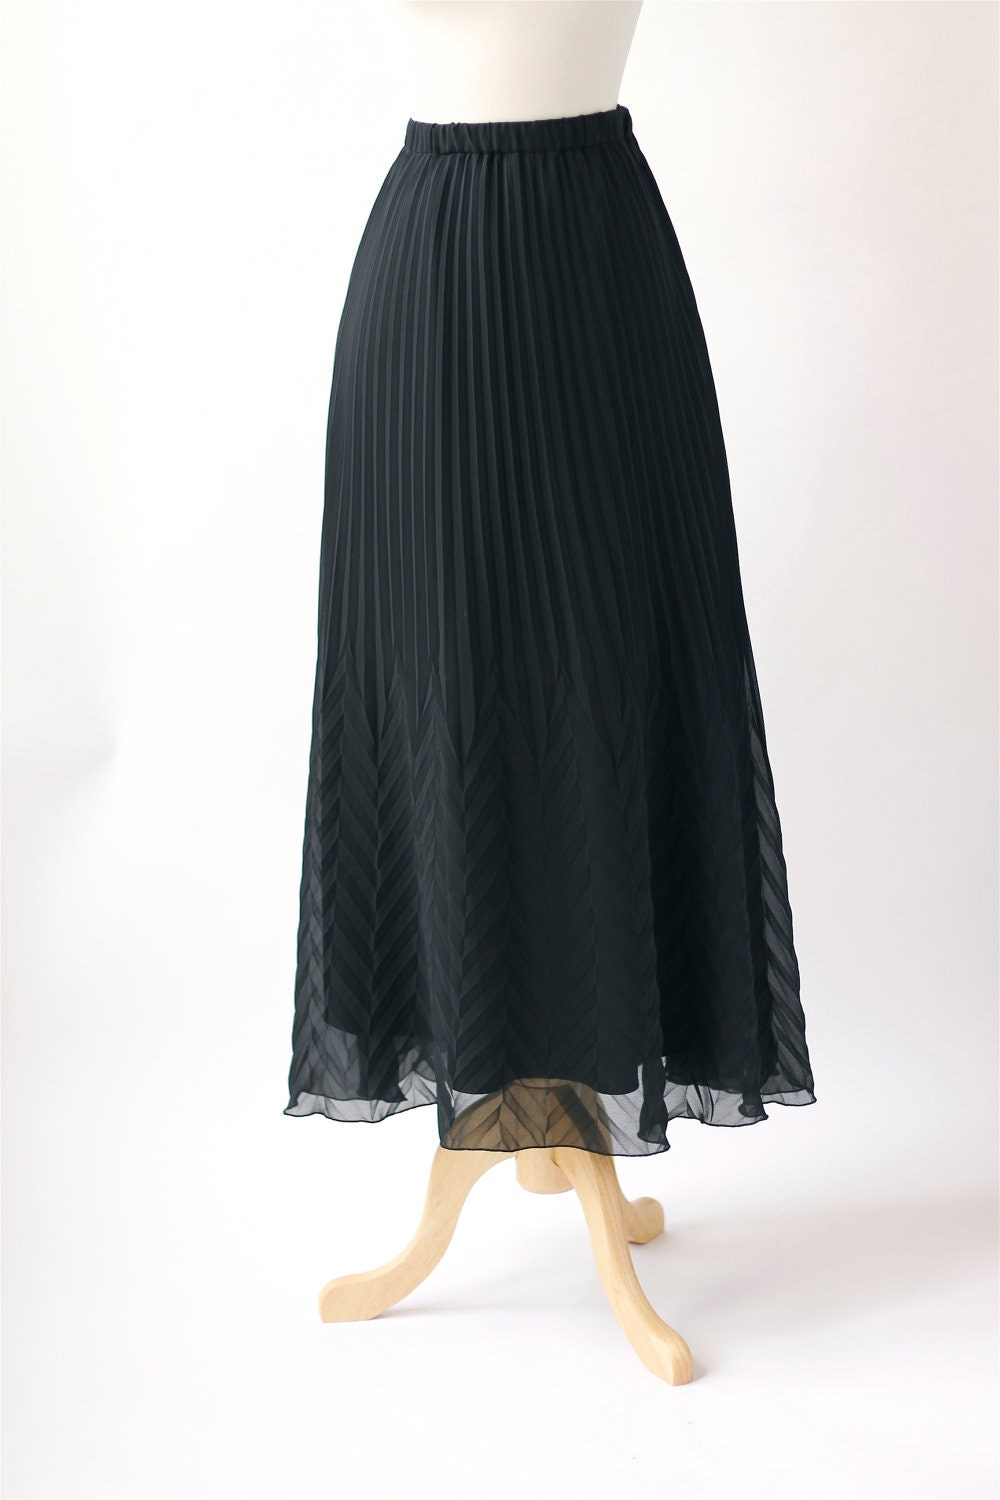 vintage chevron pleated black sheer maxi skirt by roxandsam